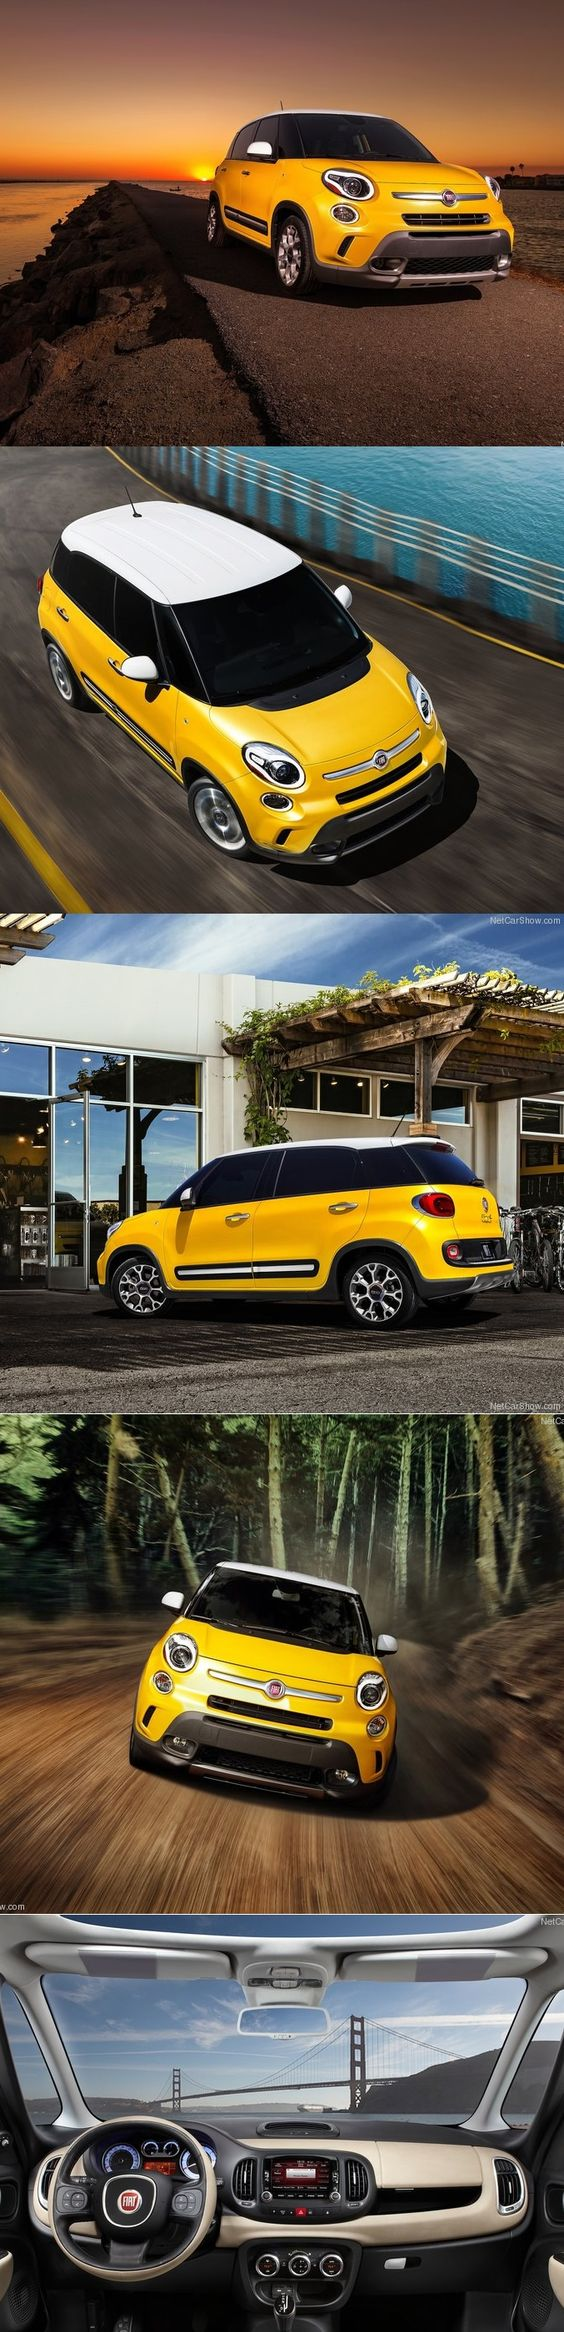 Novi Fiat 500L. #beautiful #500L #fiatlove #weloveyellow #yellow